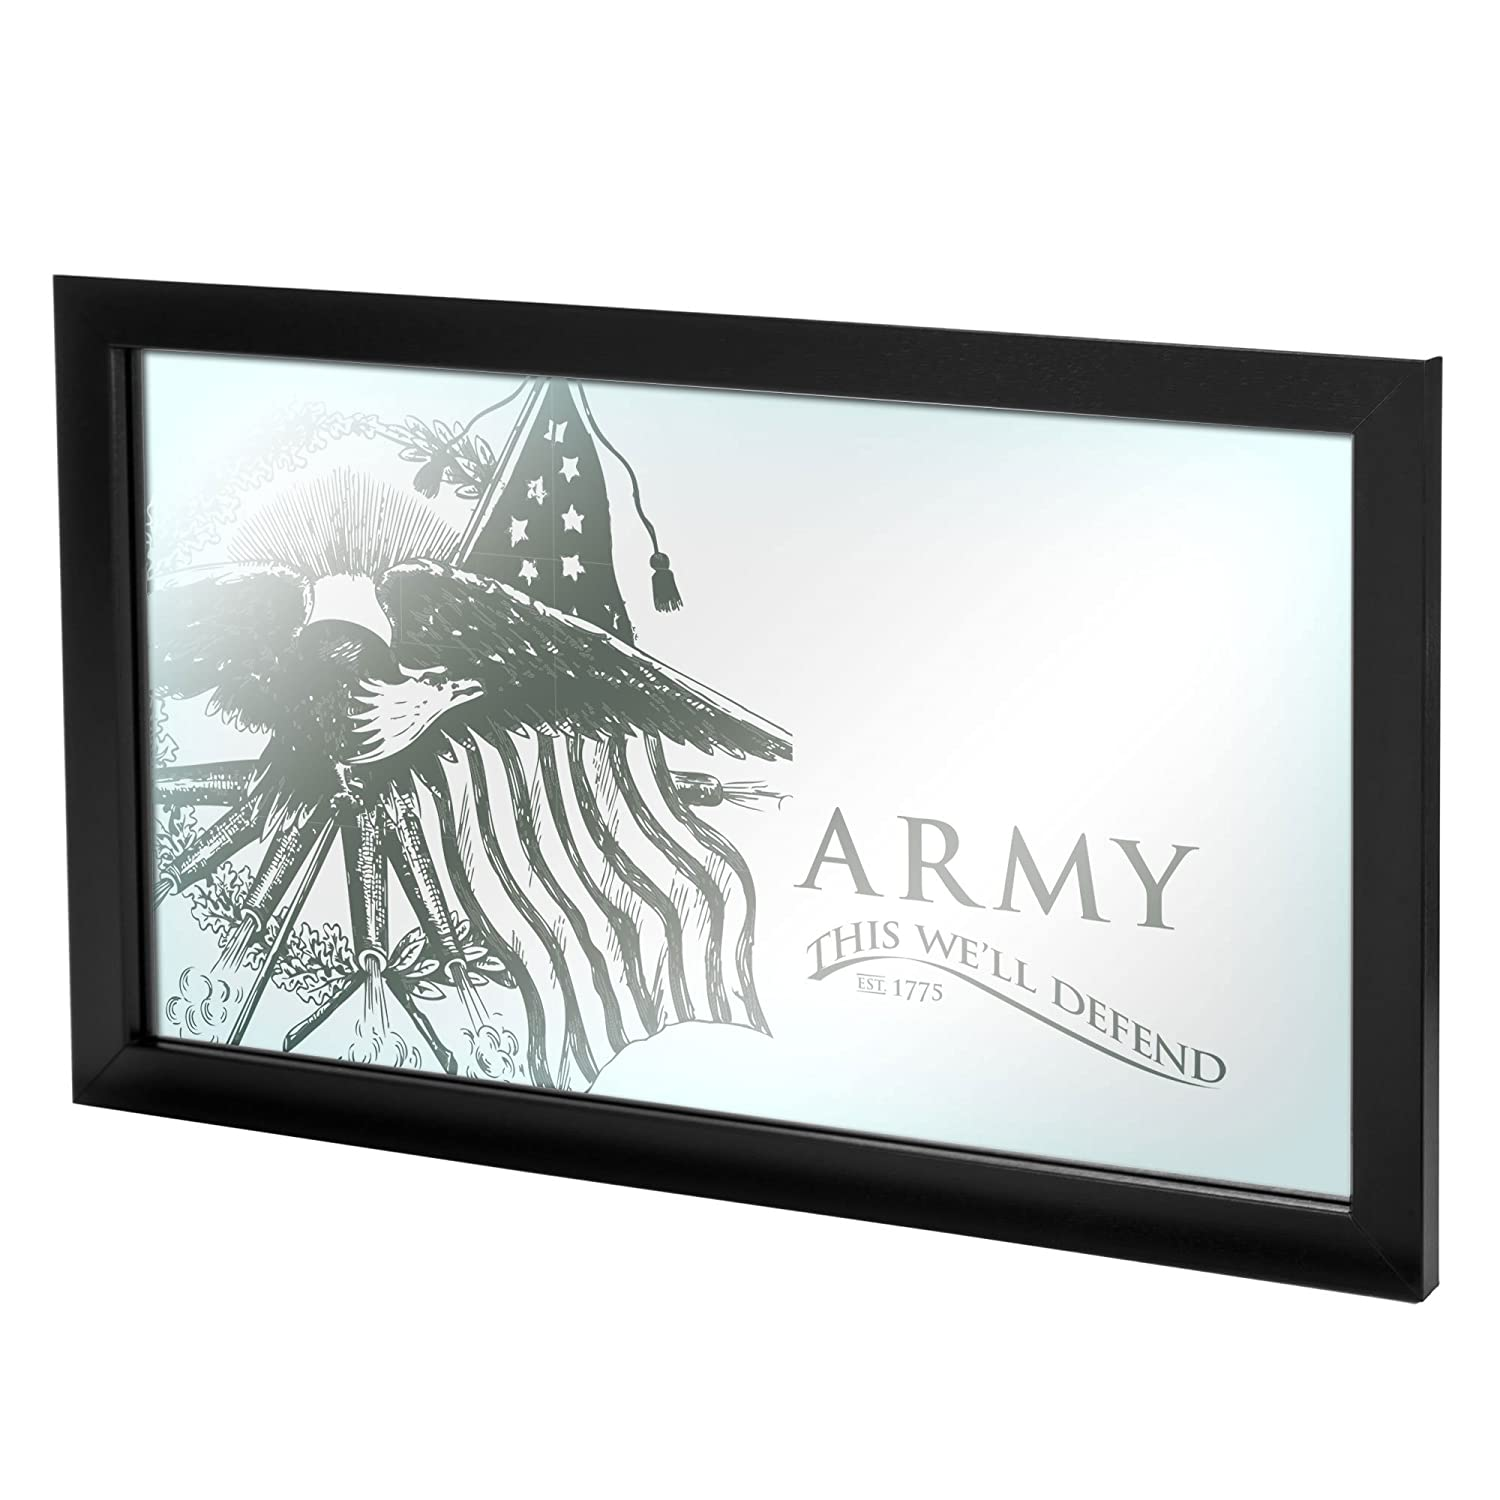 United States Army This Well Defend Framed Logo Mirror